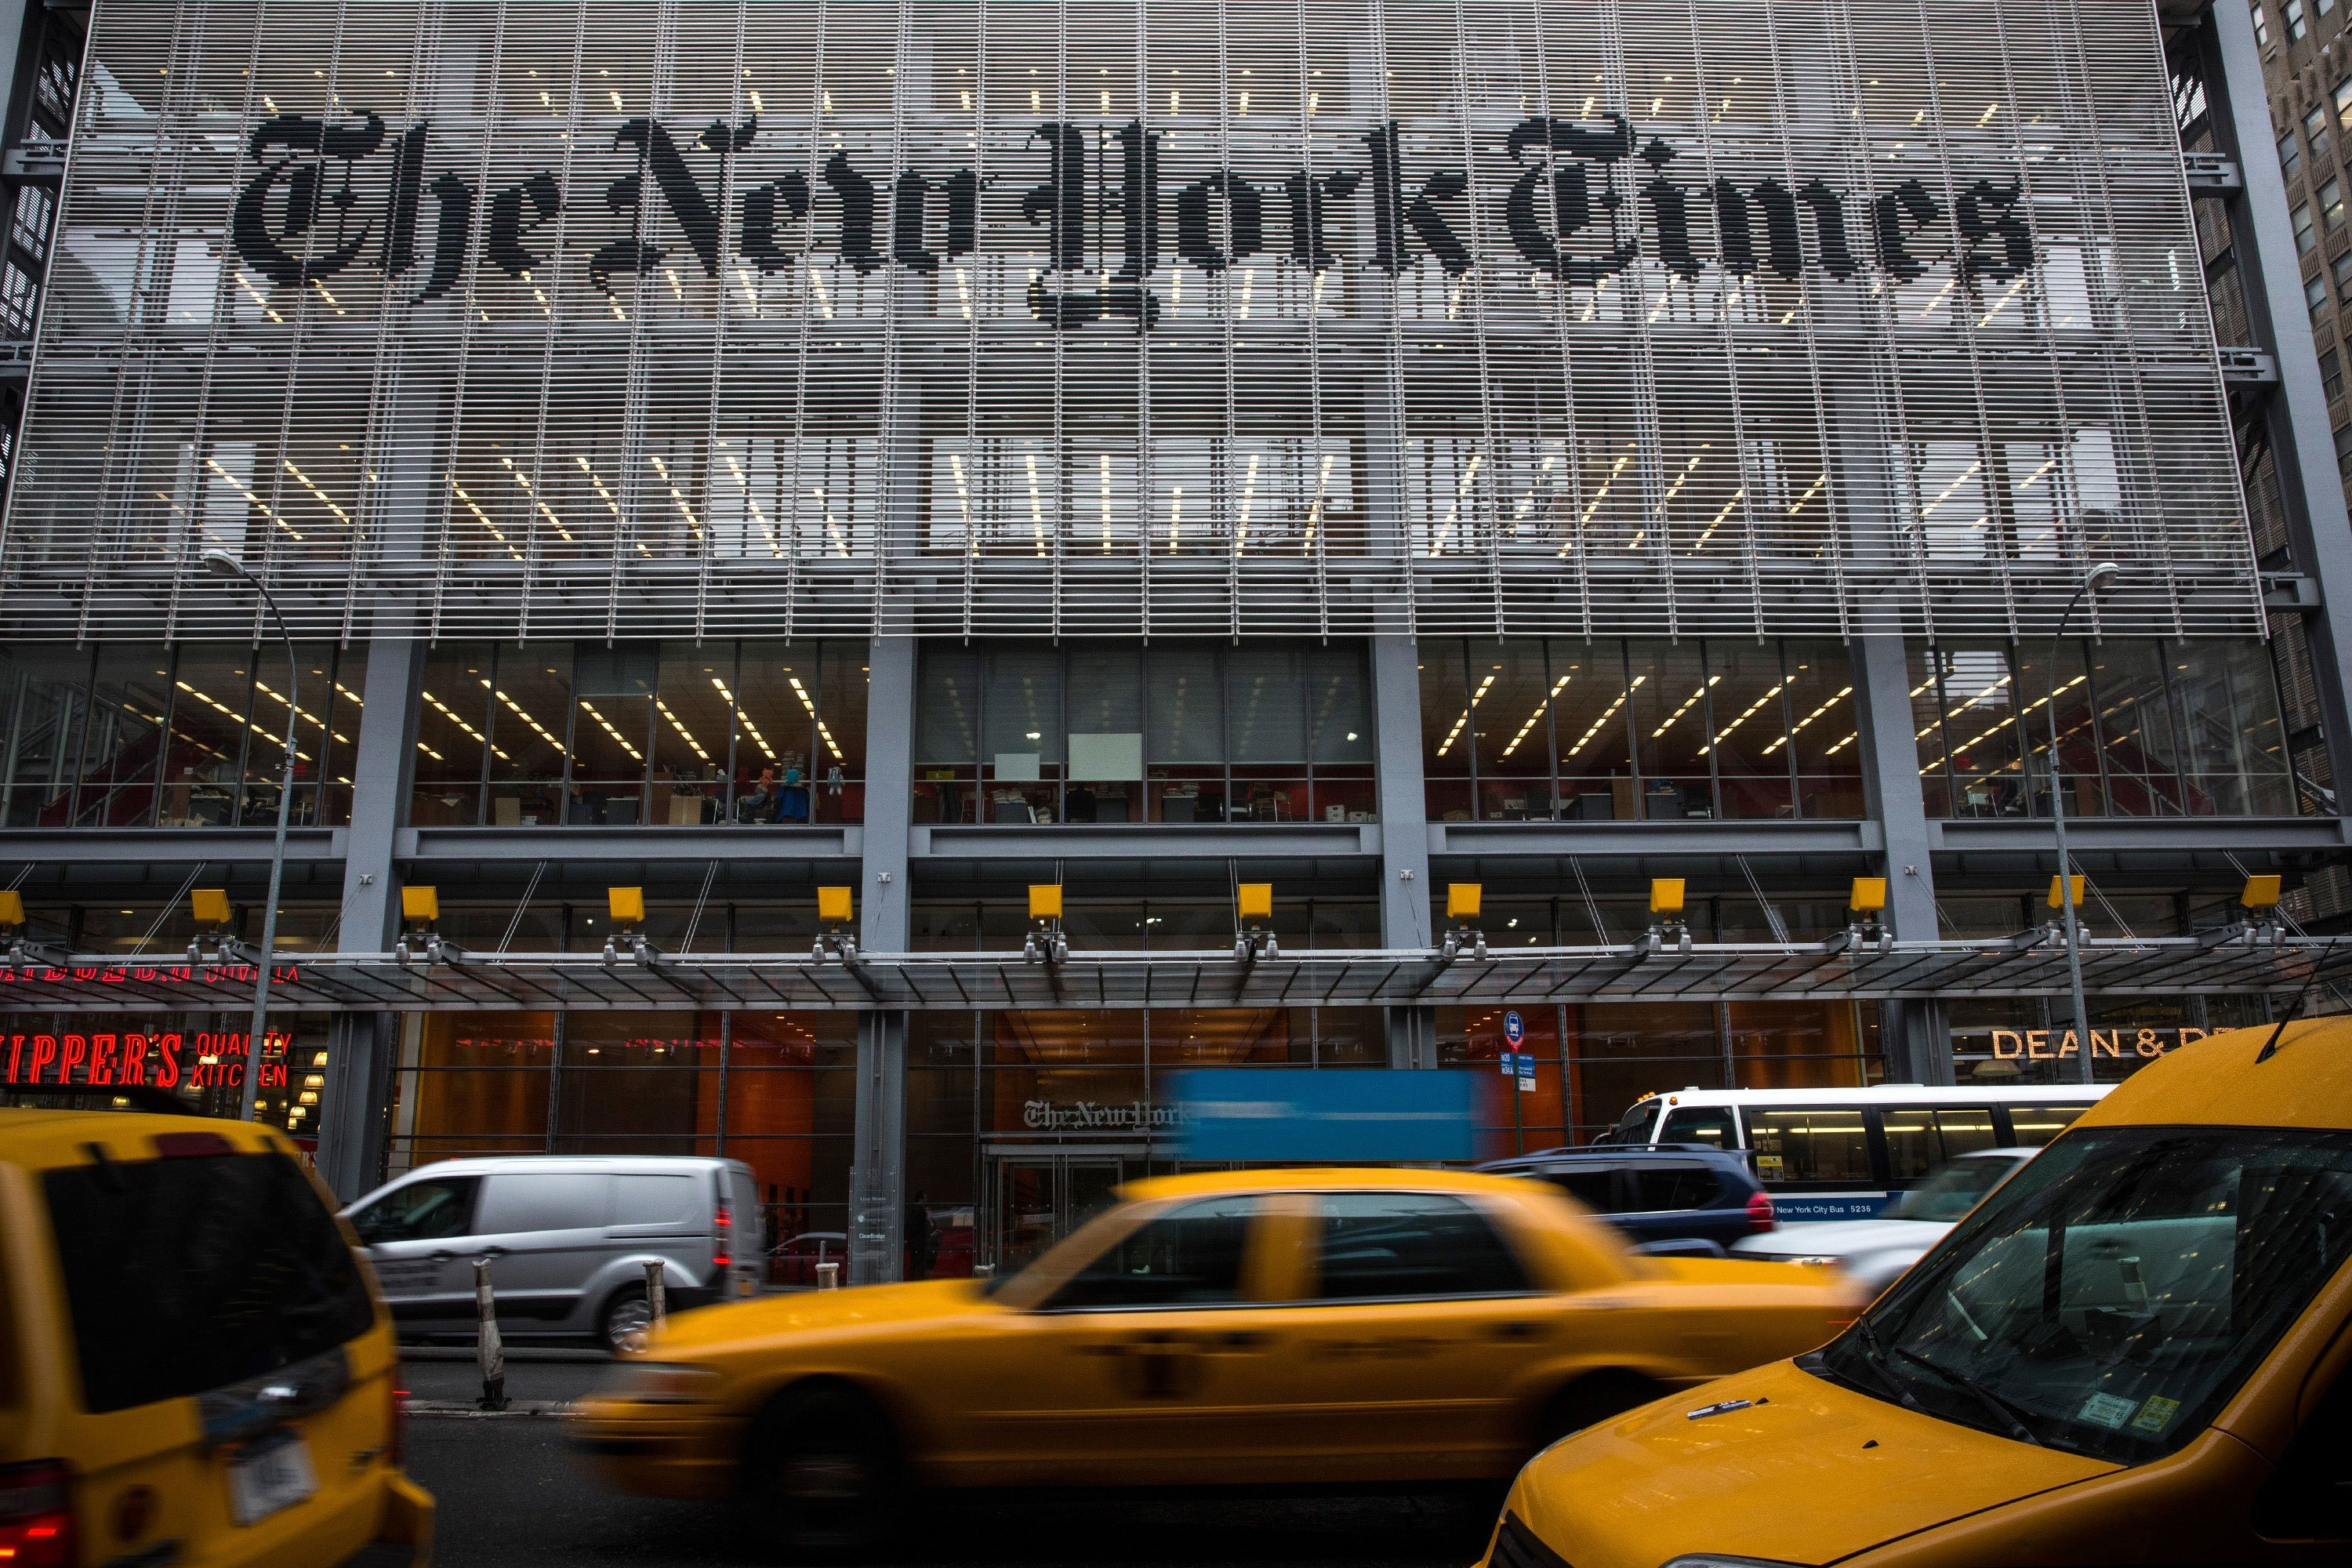 New York Times reporters grilled about botched Kavanaugh story